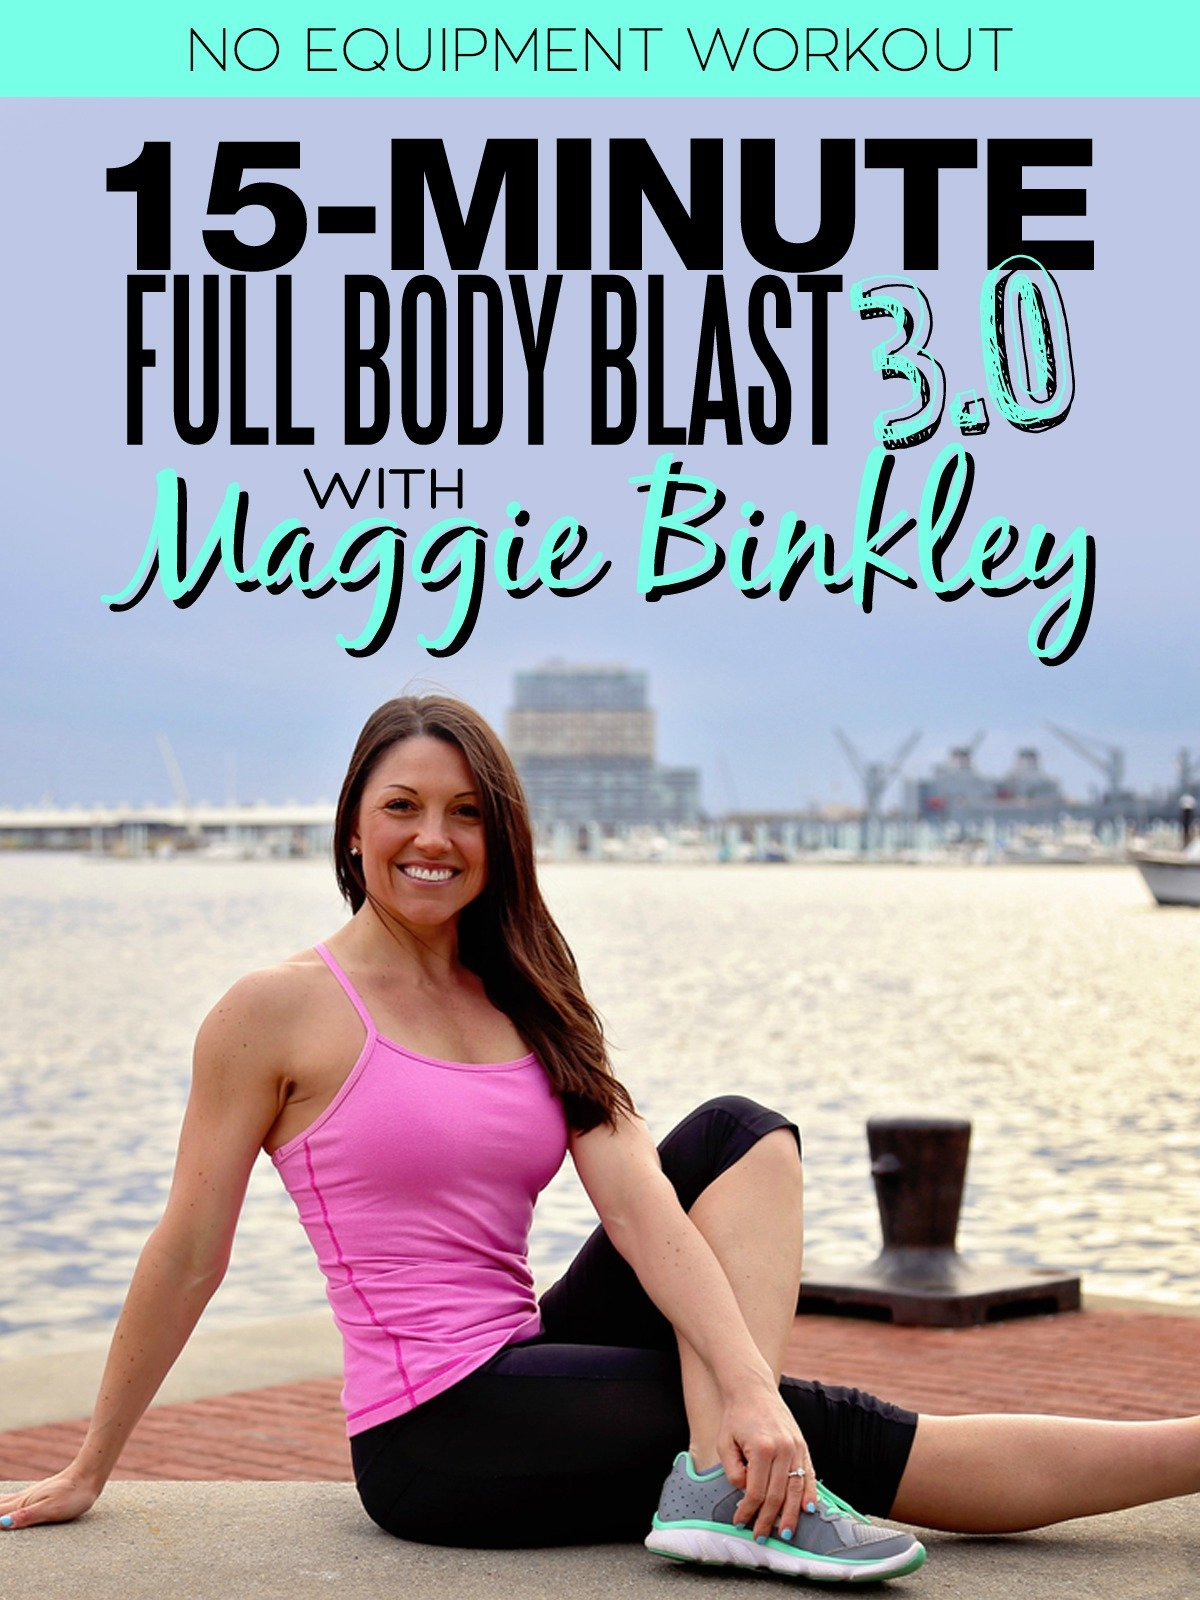 15-Minute Full Body Blast 3.0 Workout